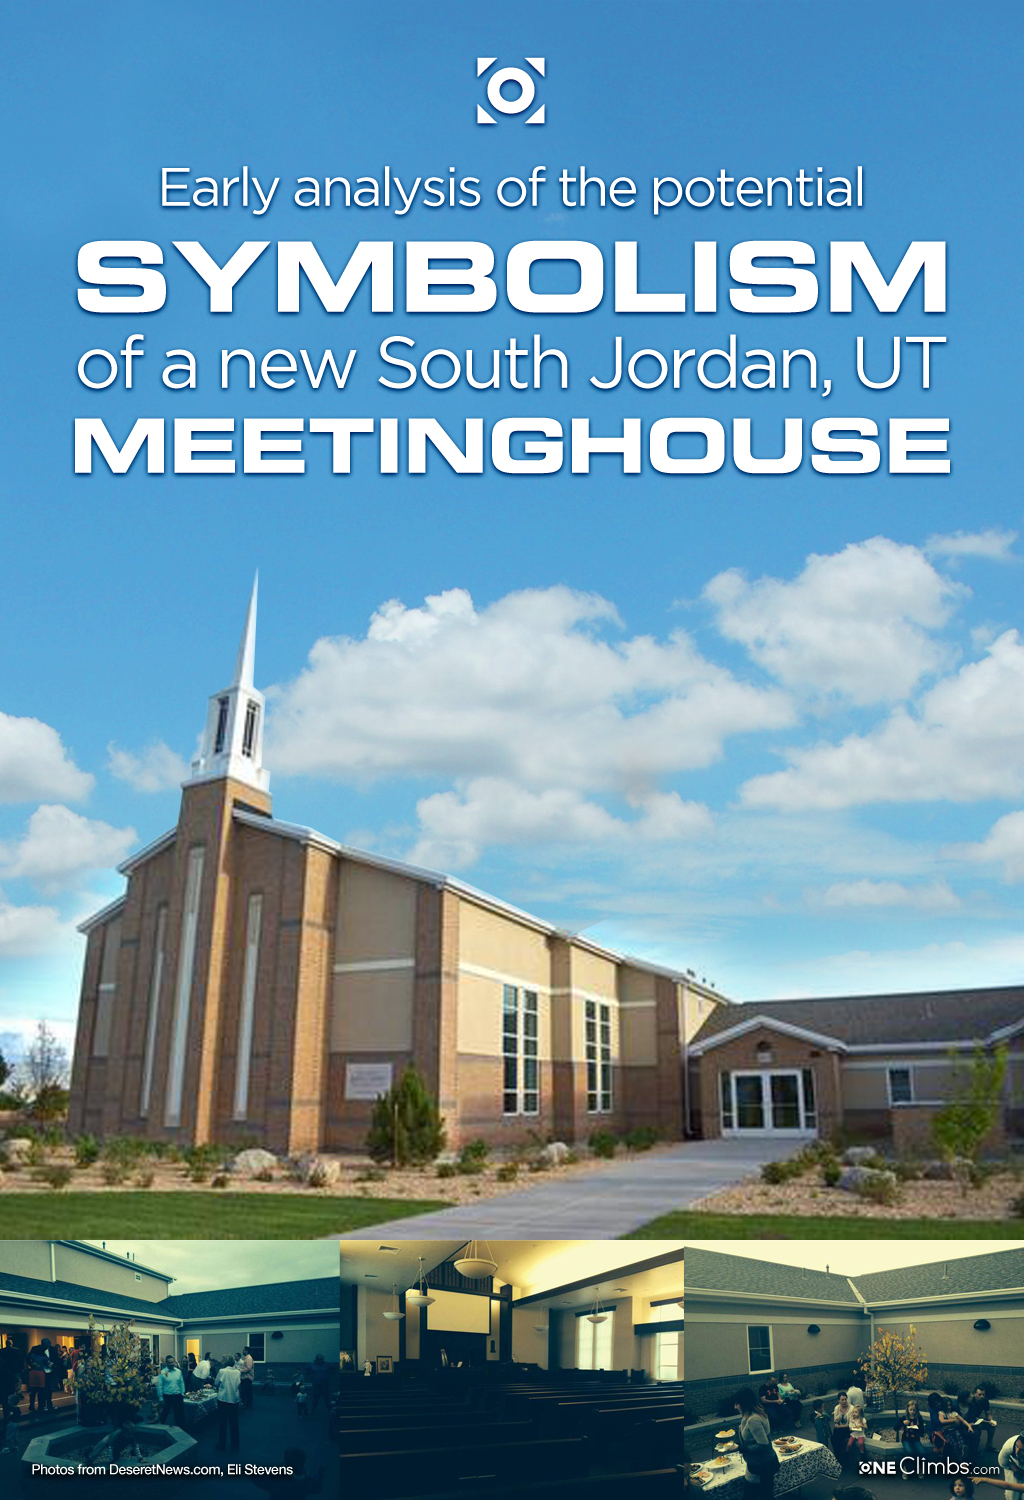 Early analysis of the potential symbolism of a new south jordan early analysis of the potential symbolism of a new south jordan meetinghouse buycottarizona